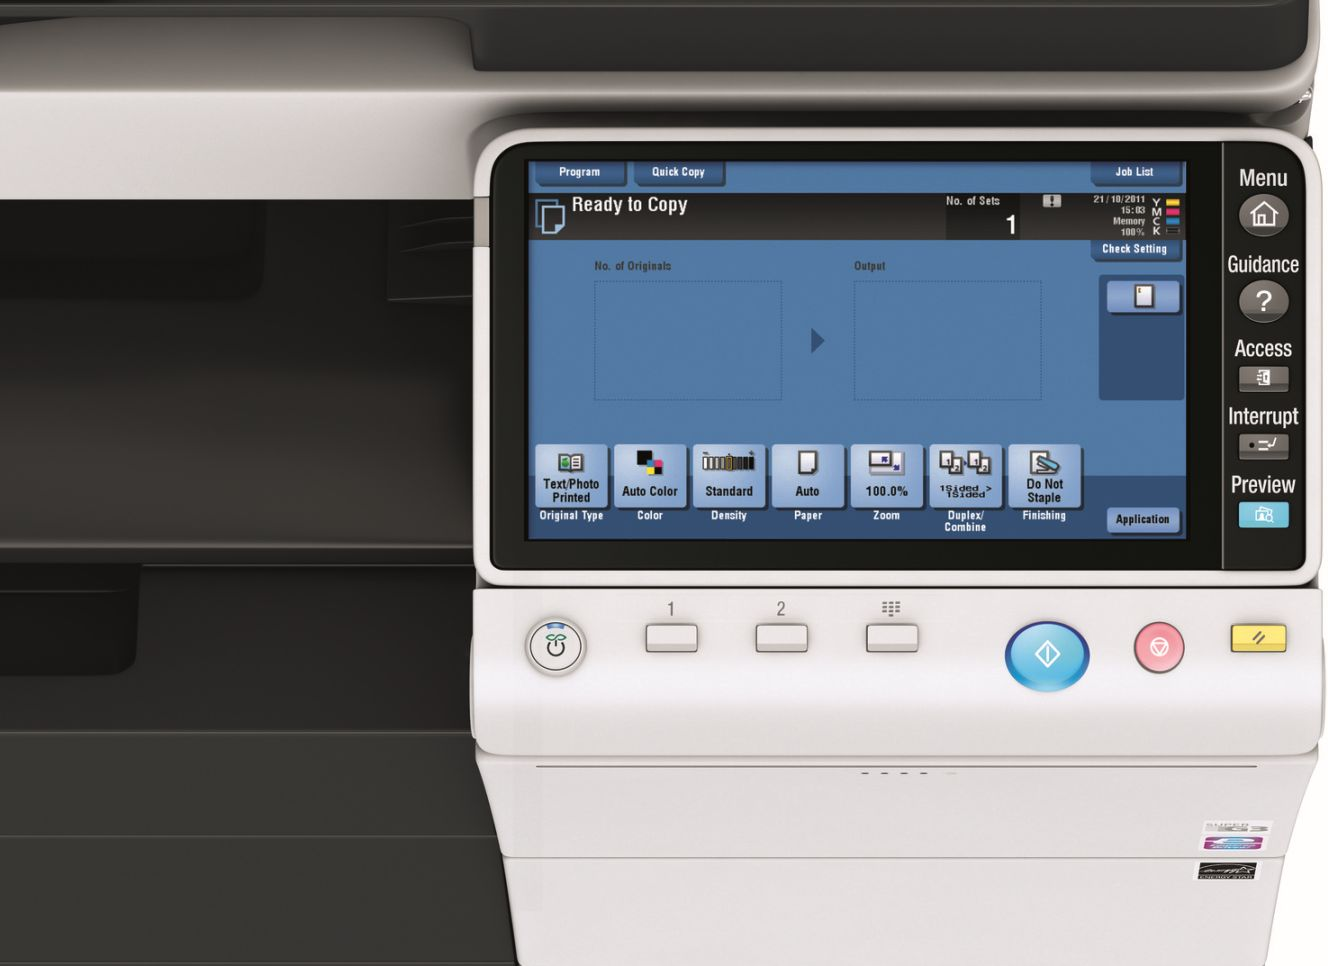 Get Free Konica Minolta Bizhub C364 Pay For Copies Only